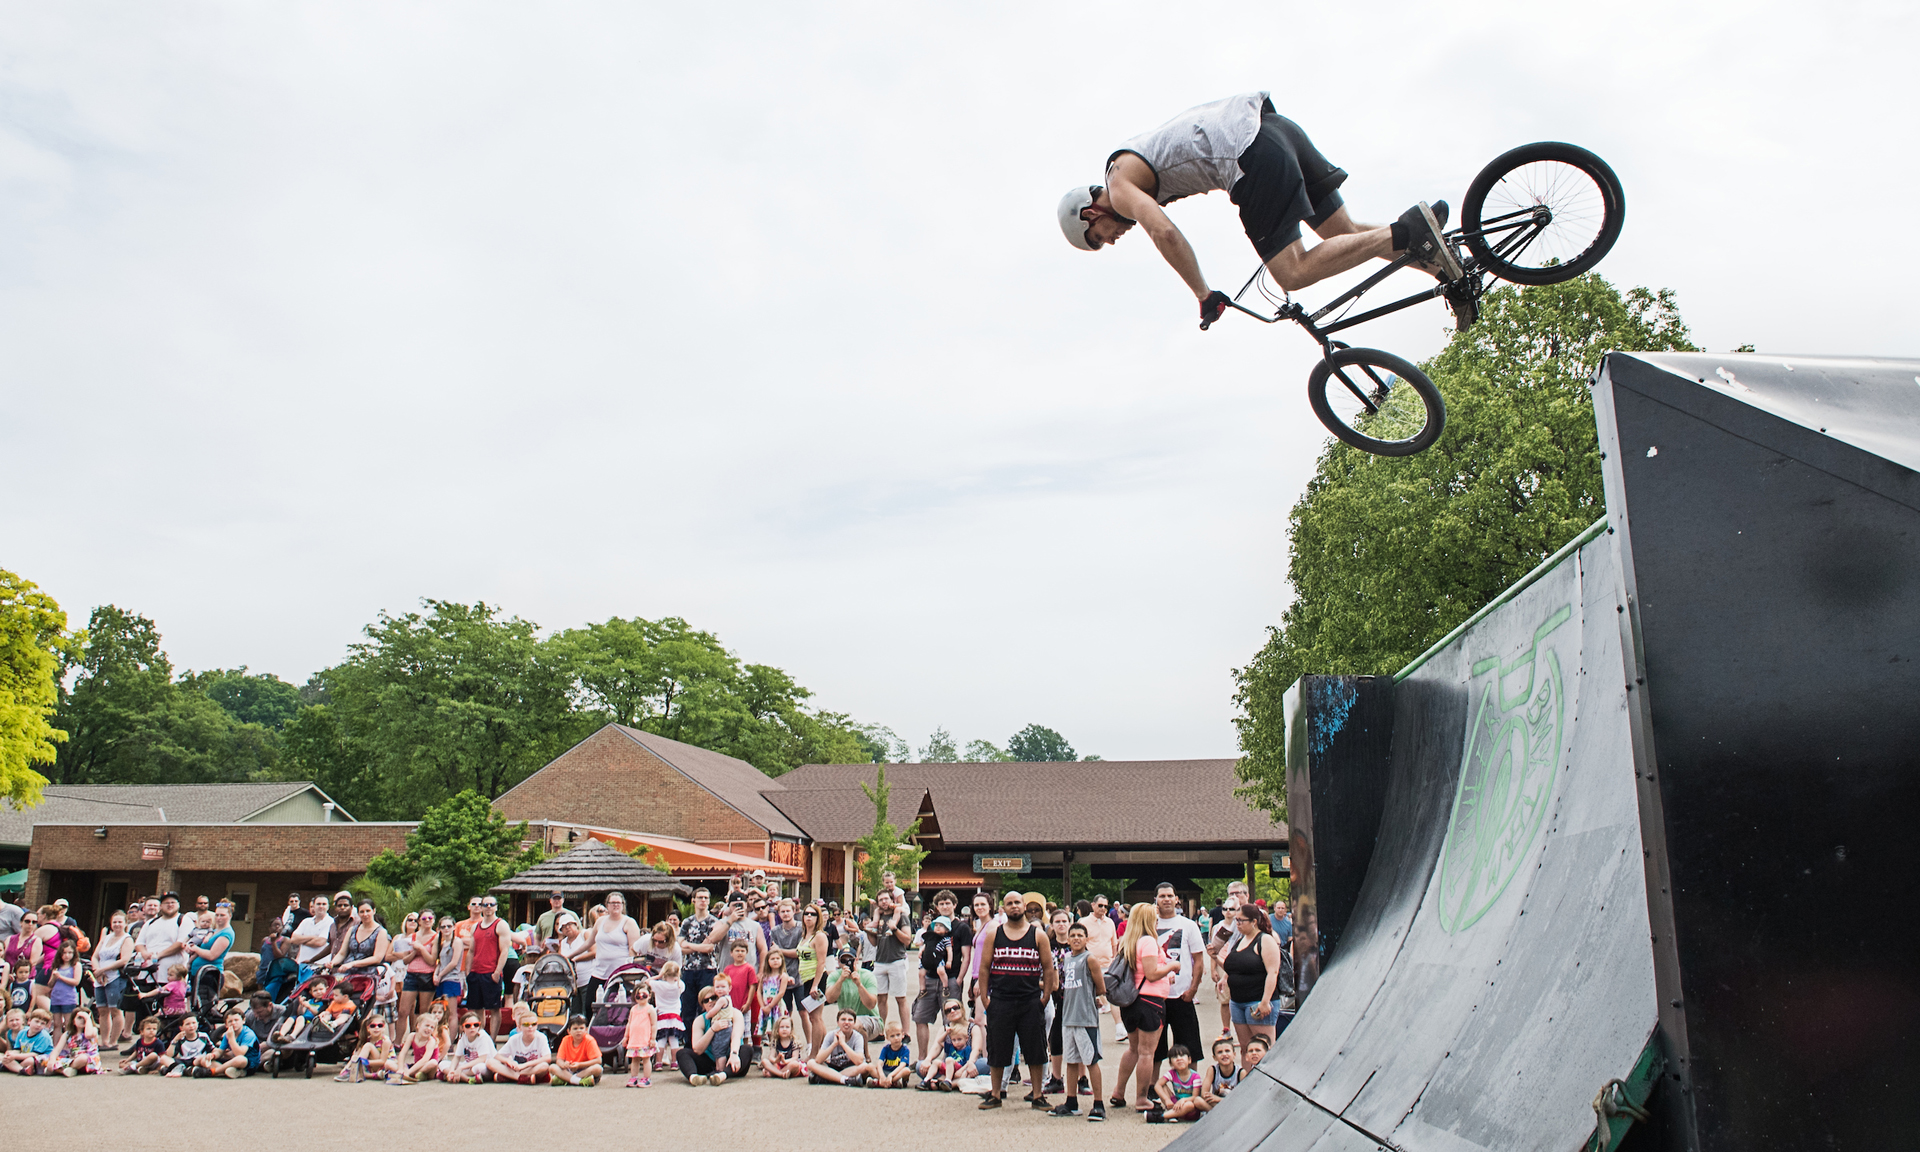 This Weekend Cleveland Metroparks Zoo Transforms Into a Giant Playground - Kick-off summer with the family at KidsDays presented by Giant Eagle